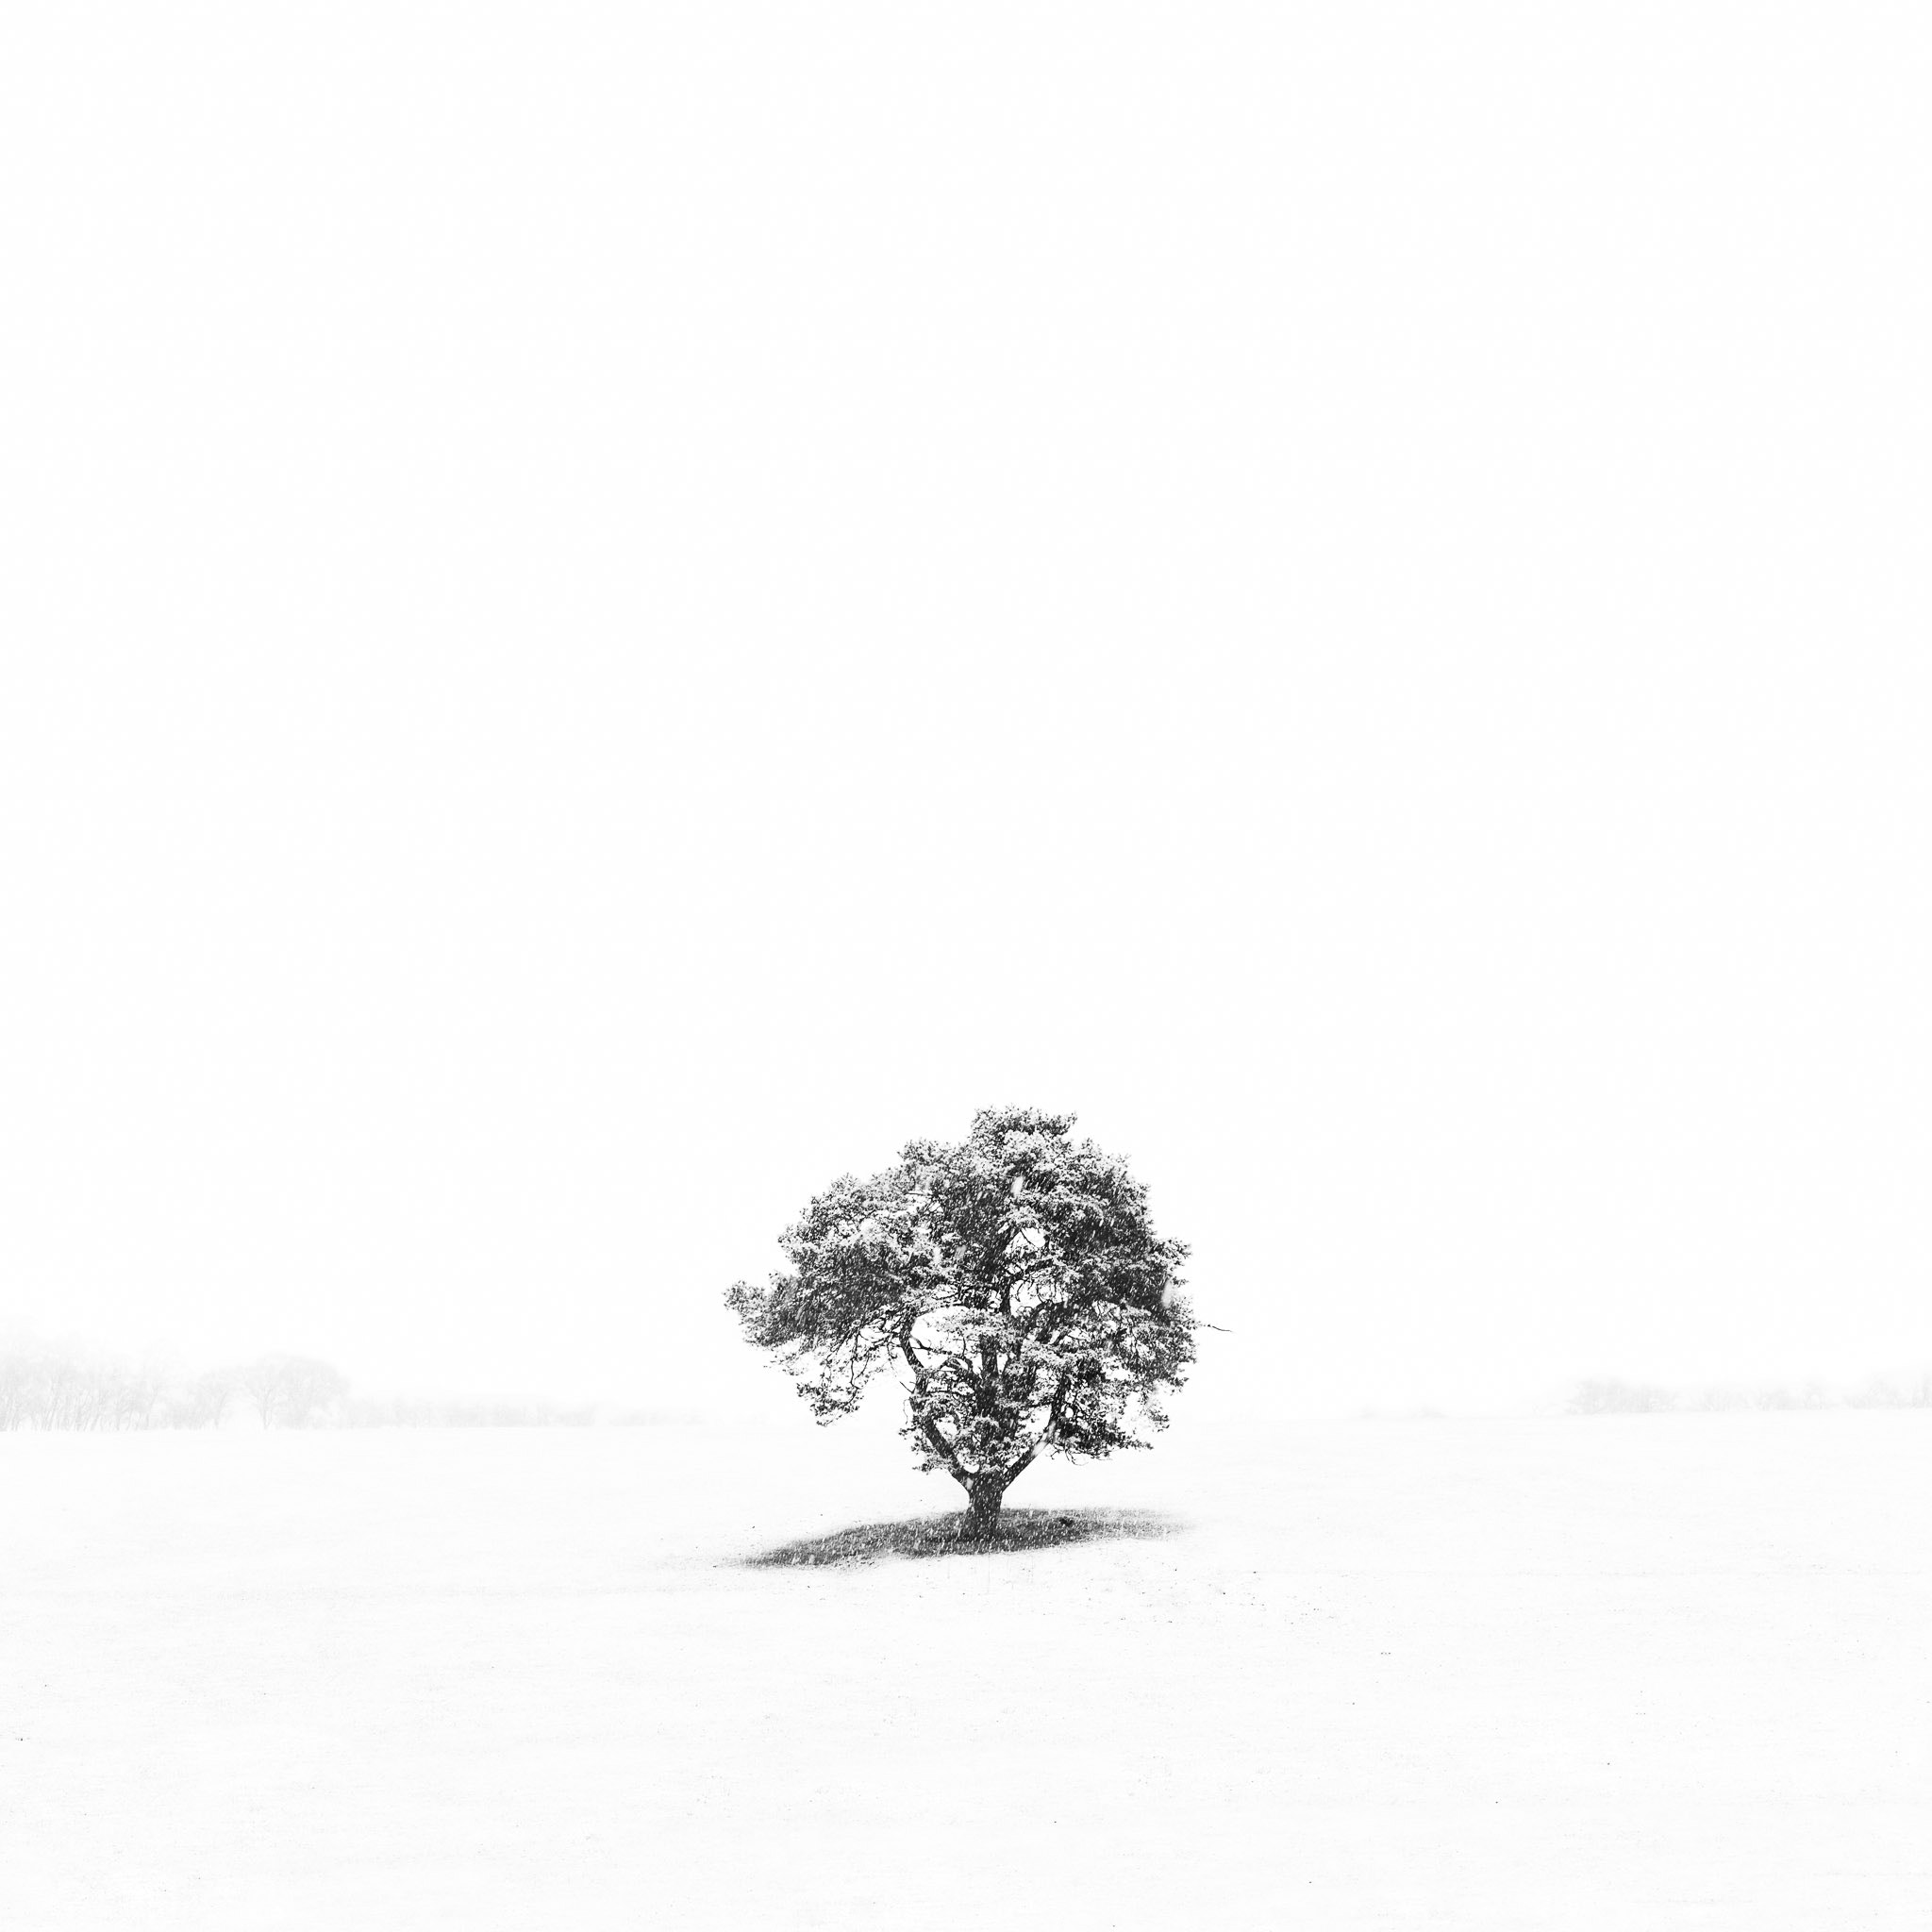 Photograph Snow Tree by Andy Gray on 500px